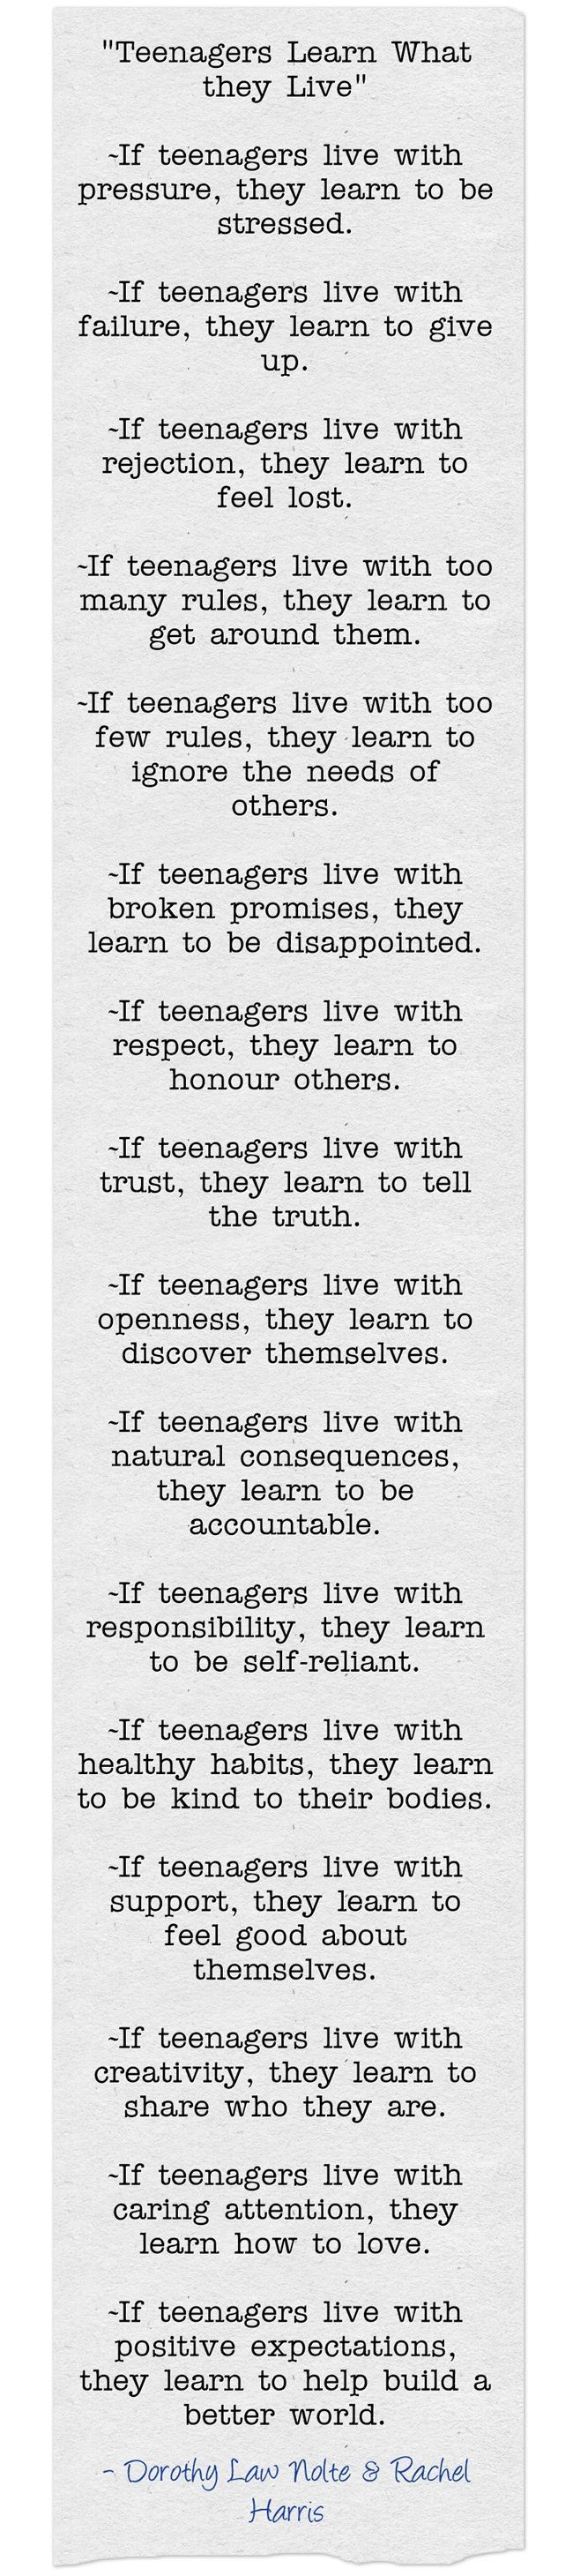 """Teenagers Learn What They Live"" Poem by: Dorothy Law Nolte & Rachel Harris. 2002. Teenagers. Advice. Parenting. ""Children Learn What They Live""  Poem (1998)."